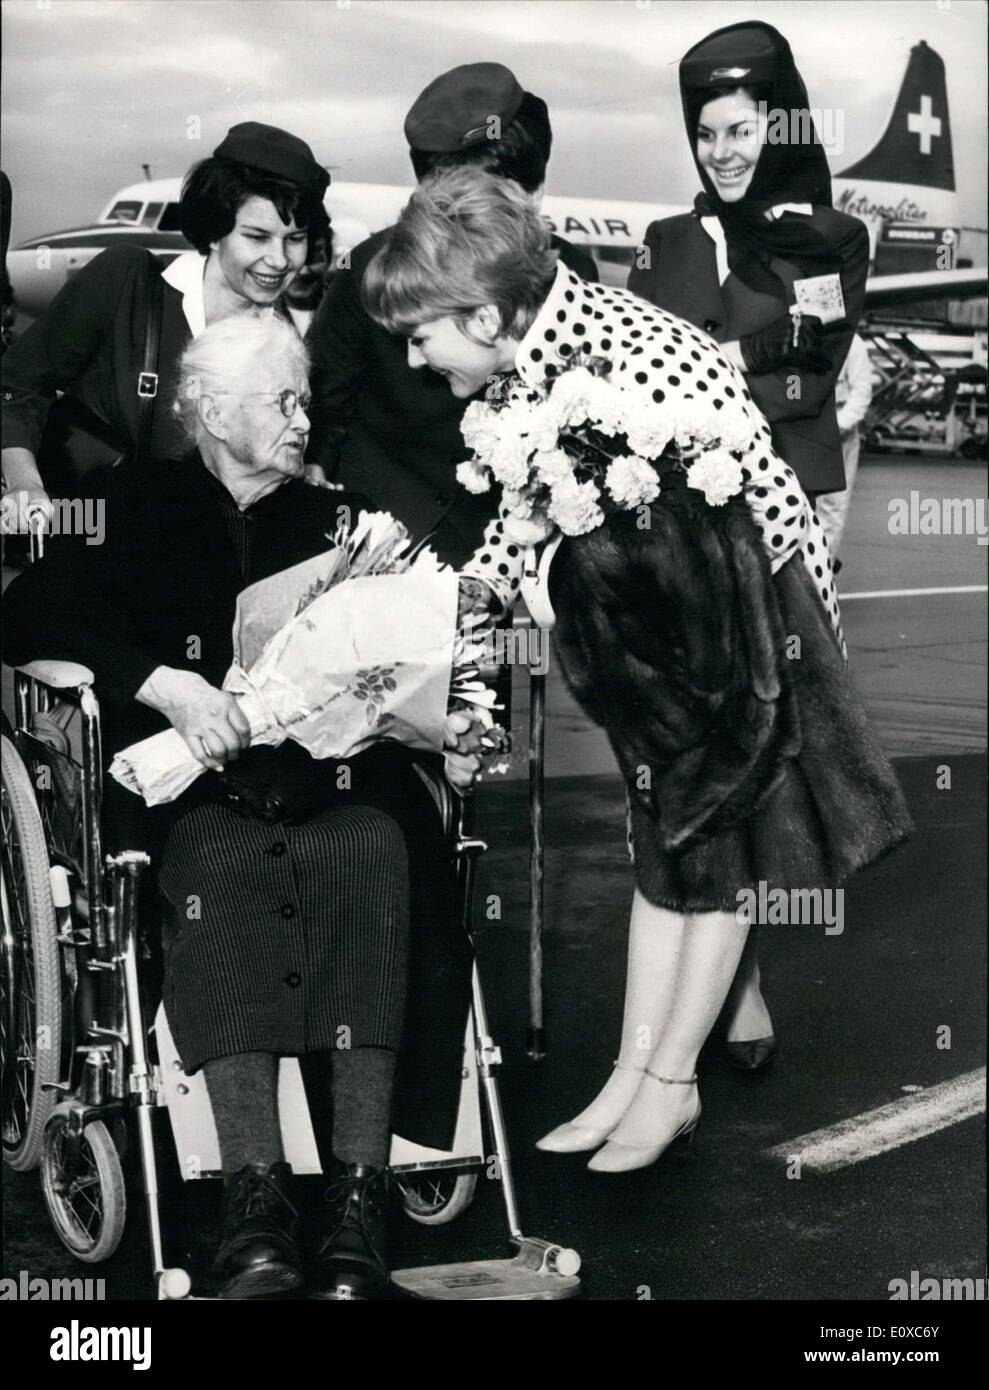 Feb. 10, 1966 - Sophie Widmer of Lenzbourg just celebrated her 103 birthday. She ended up meeting Petula Clark on a Swissair flight from Zurich to Geneva. Clark made sure to congratulate Widmer. - Stock Image